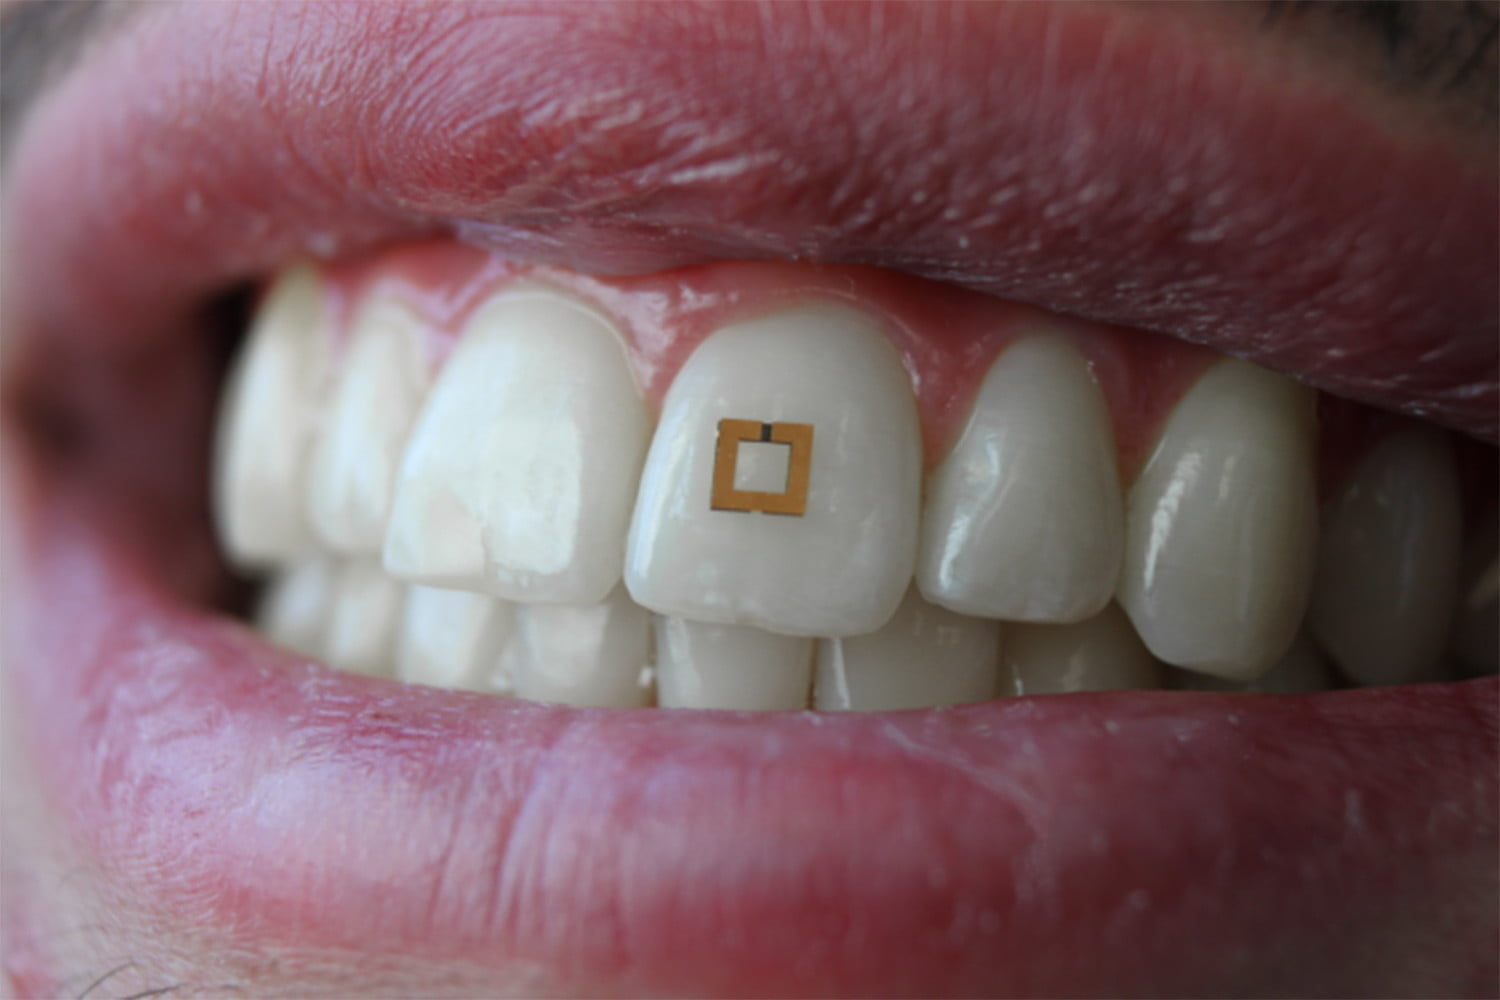 Tooth Mounted Sensors Track Your Diet From Inside Your Mouth